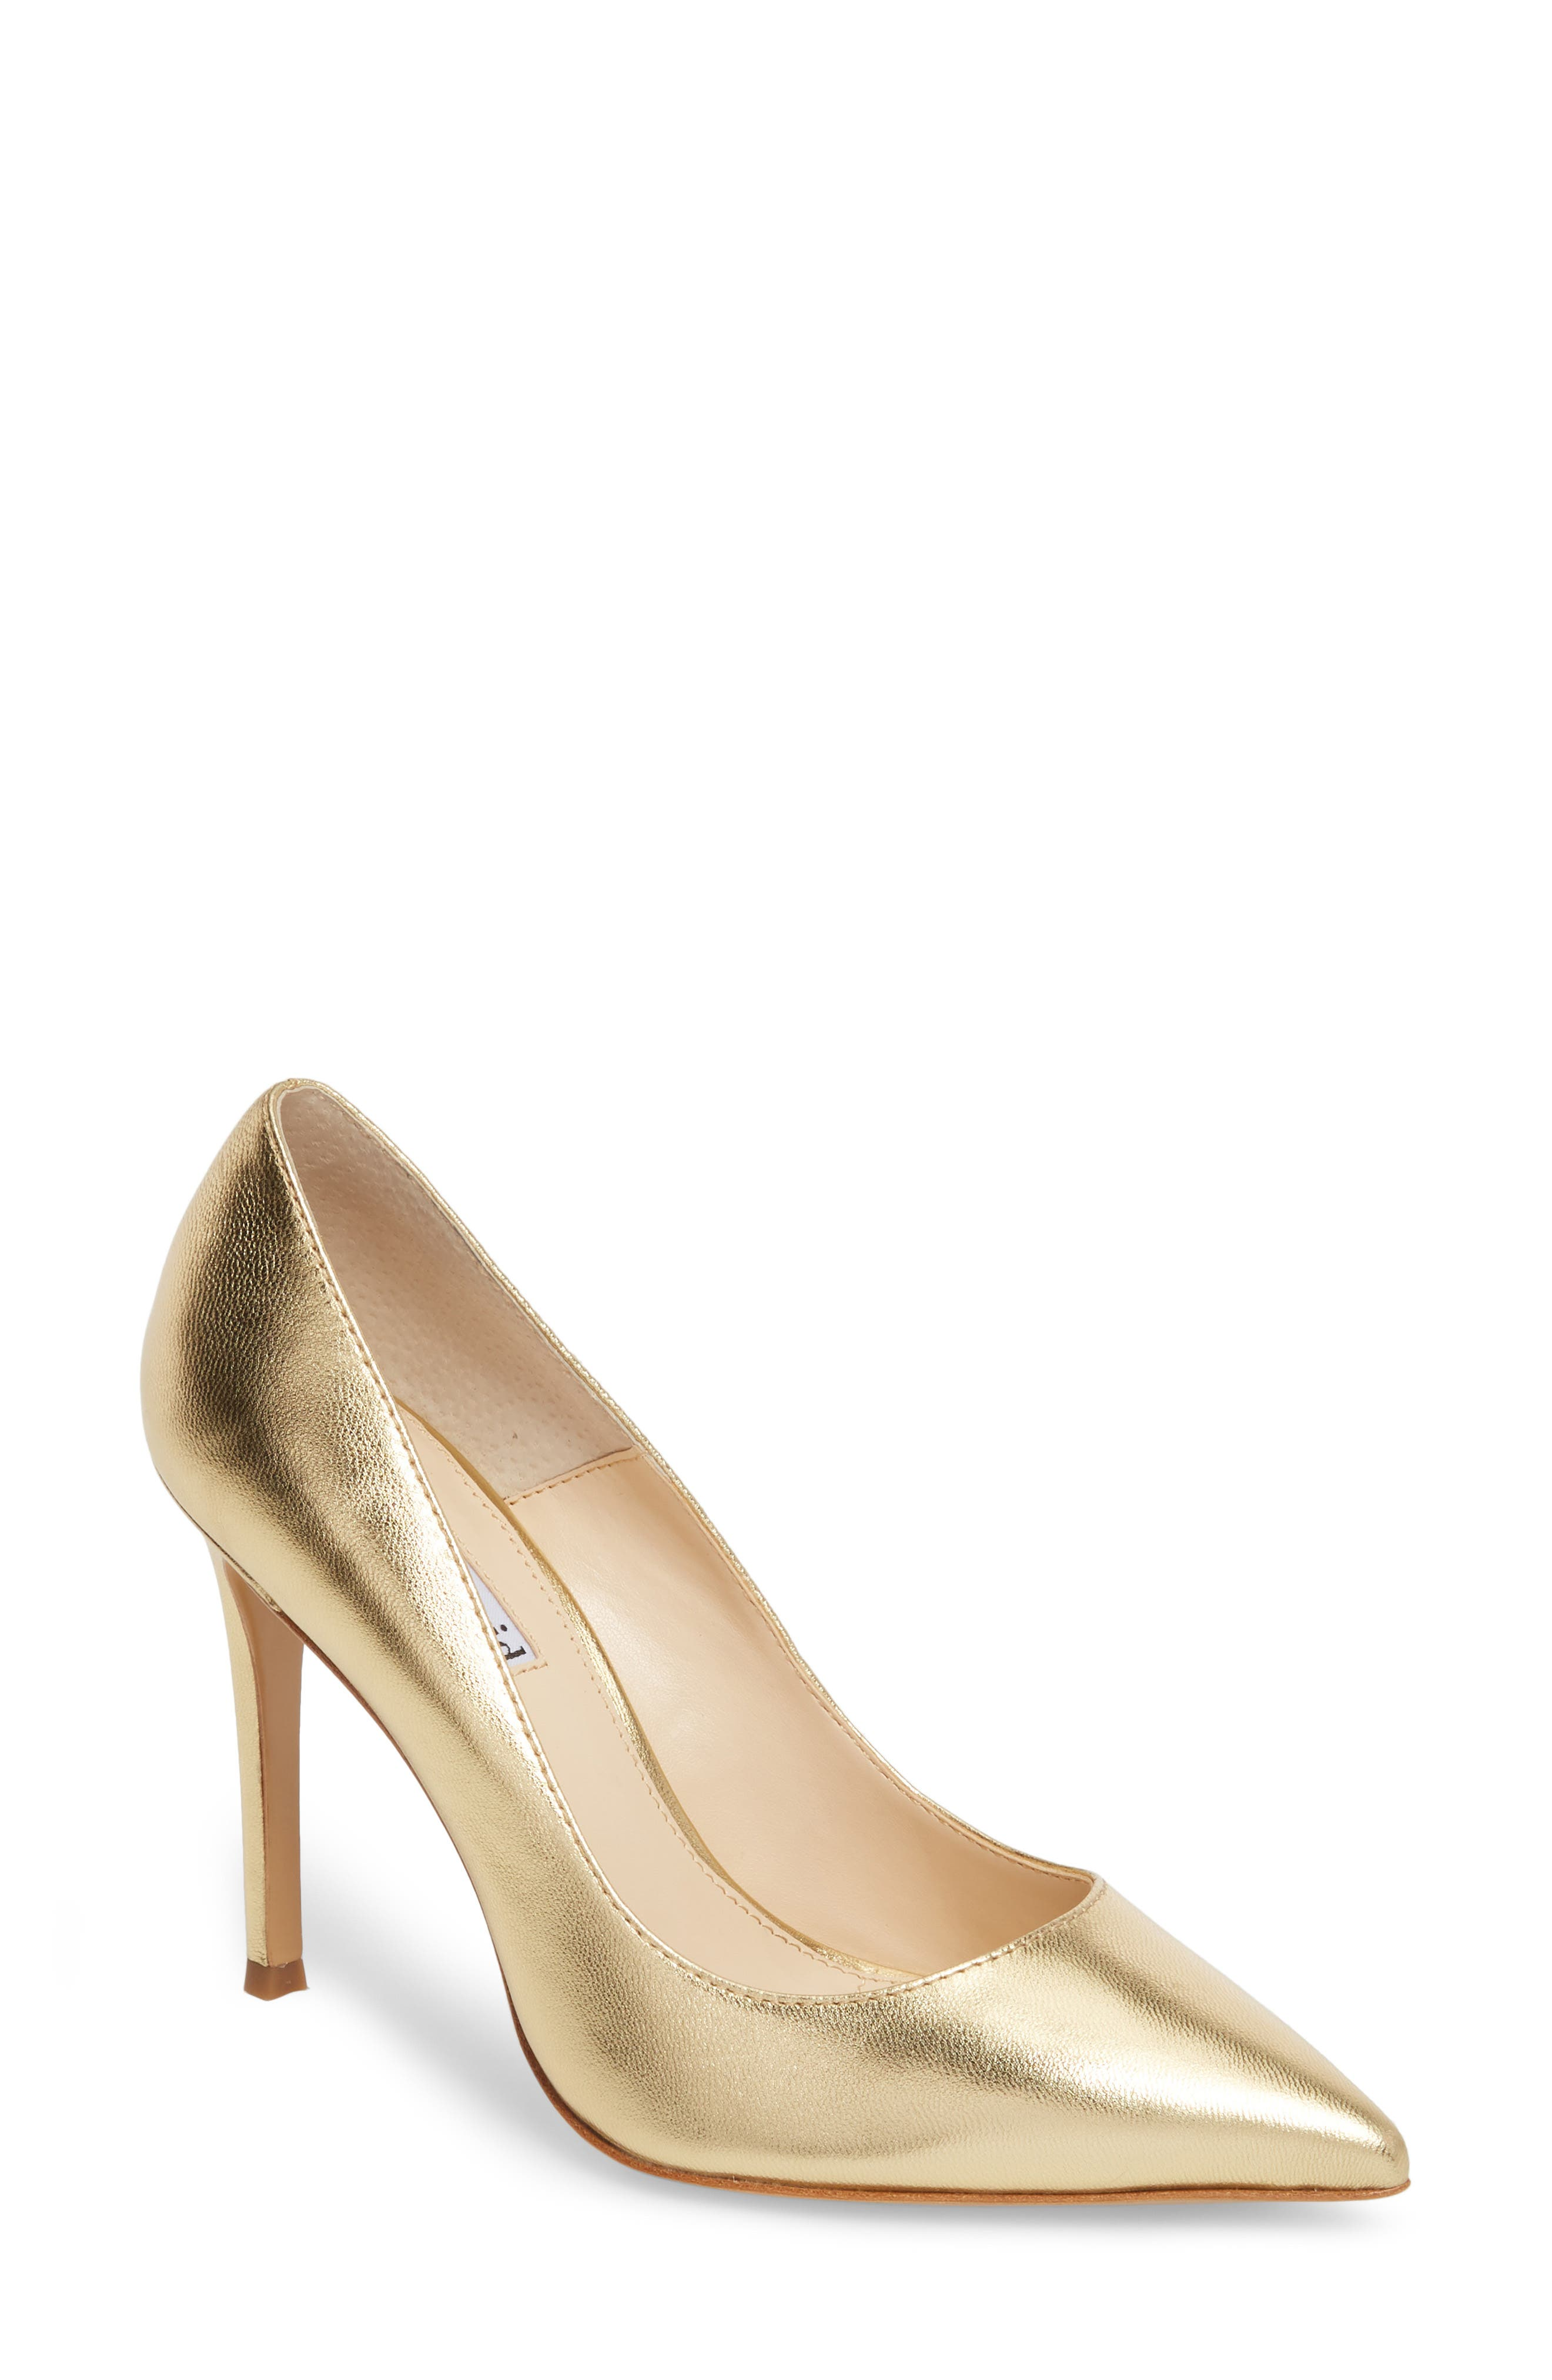 CHARLES DAVID Calessi Pointy Toe Pump, Main, color, GOLD LEATHER